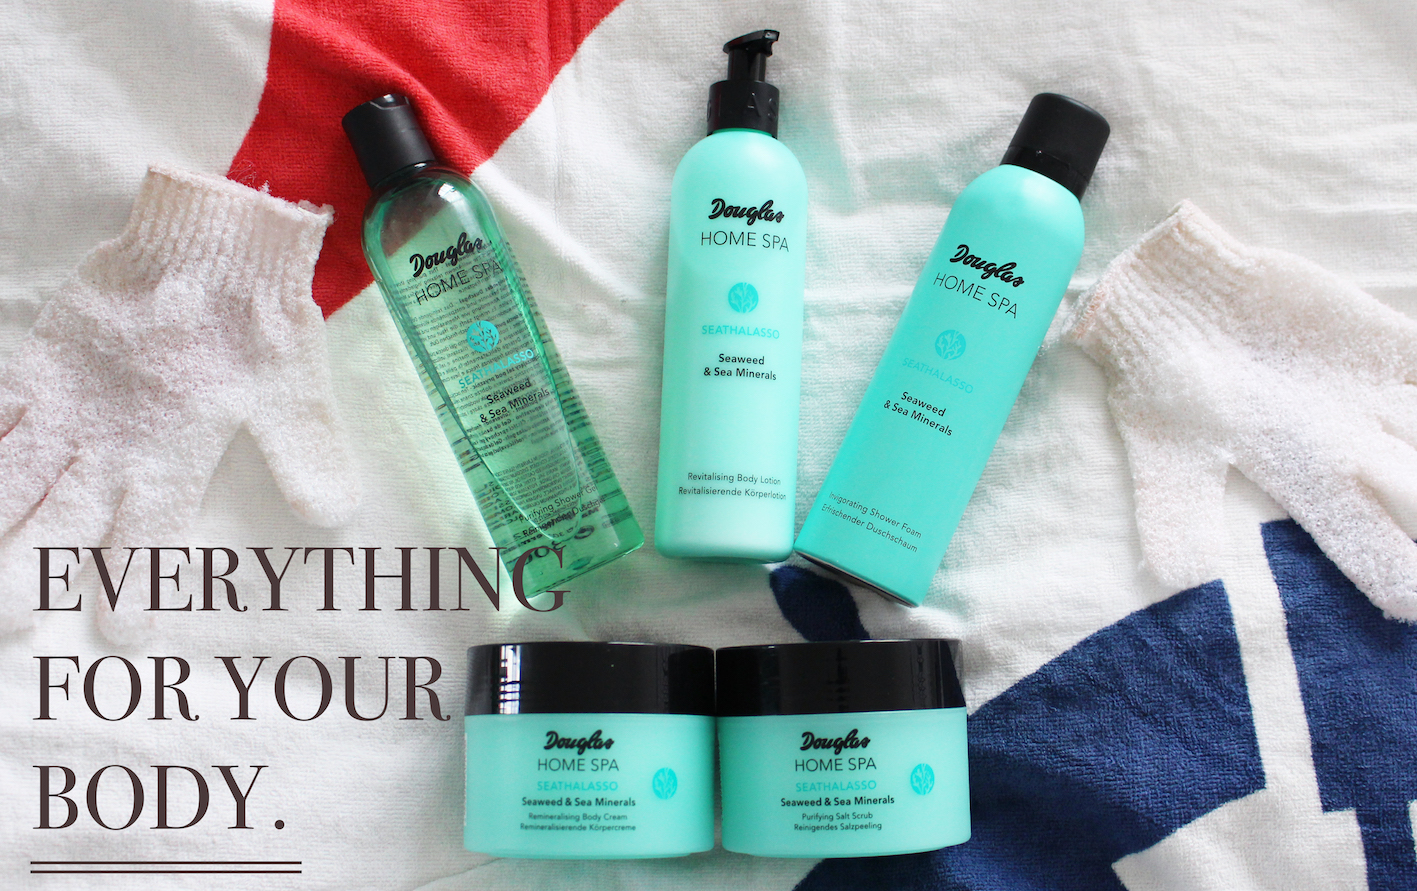 DOUGLAS HOME SPA SEAWEED & SEA MINERALS